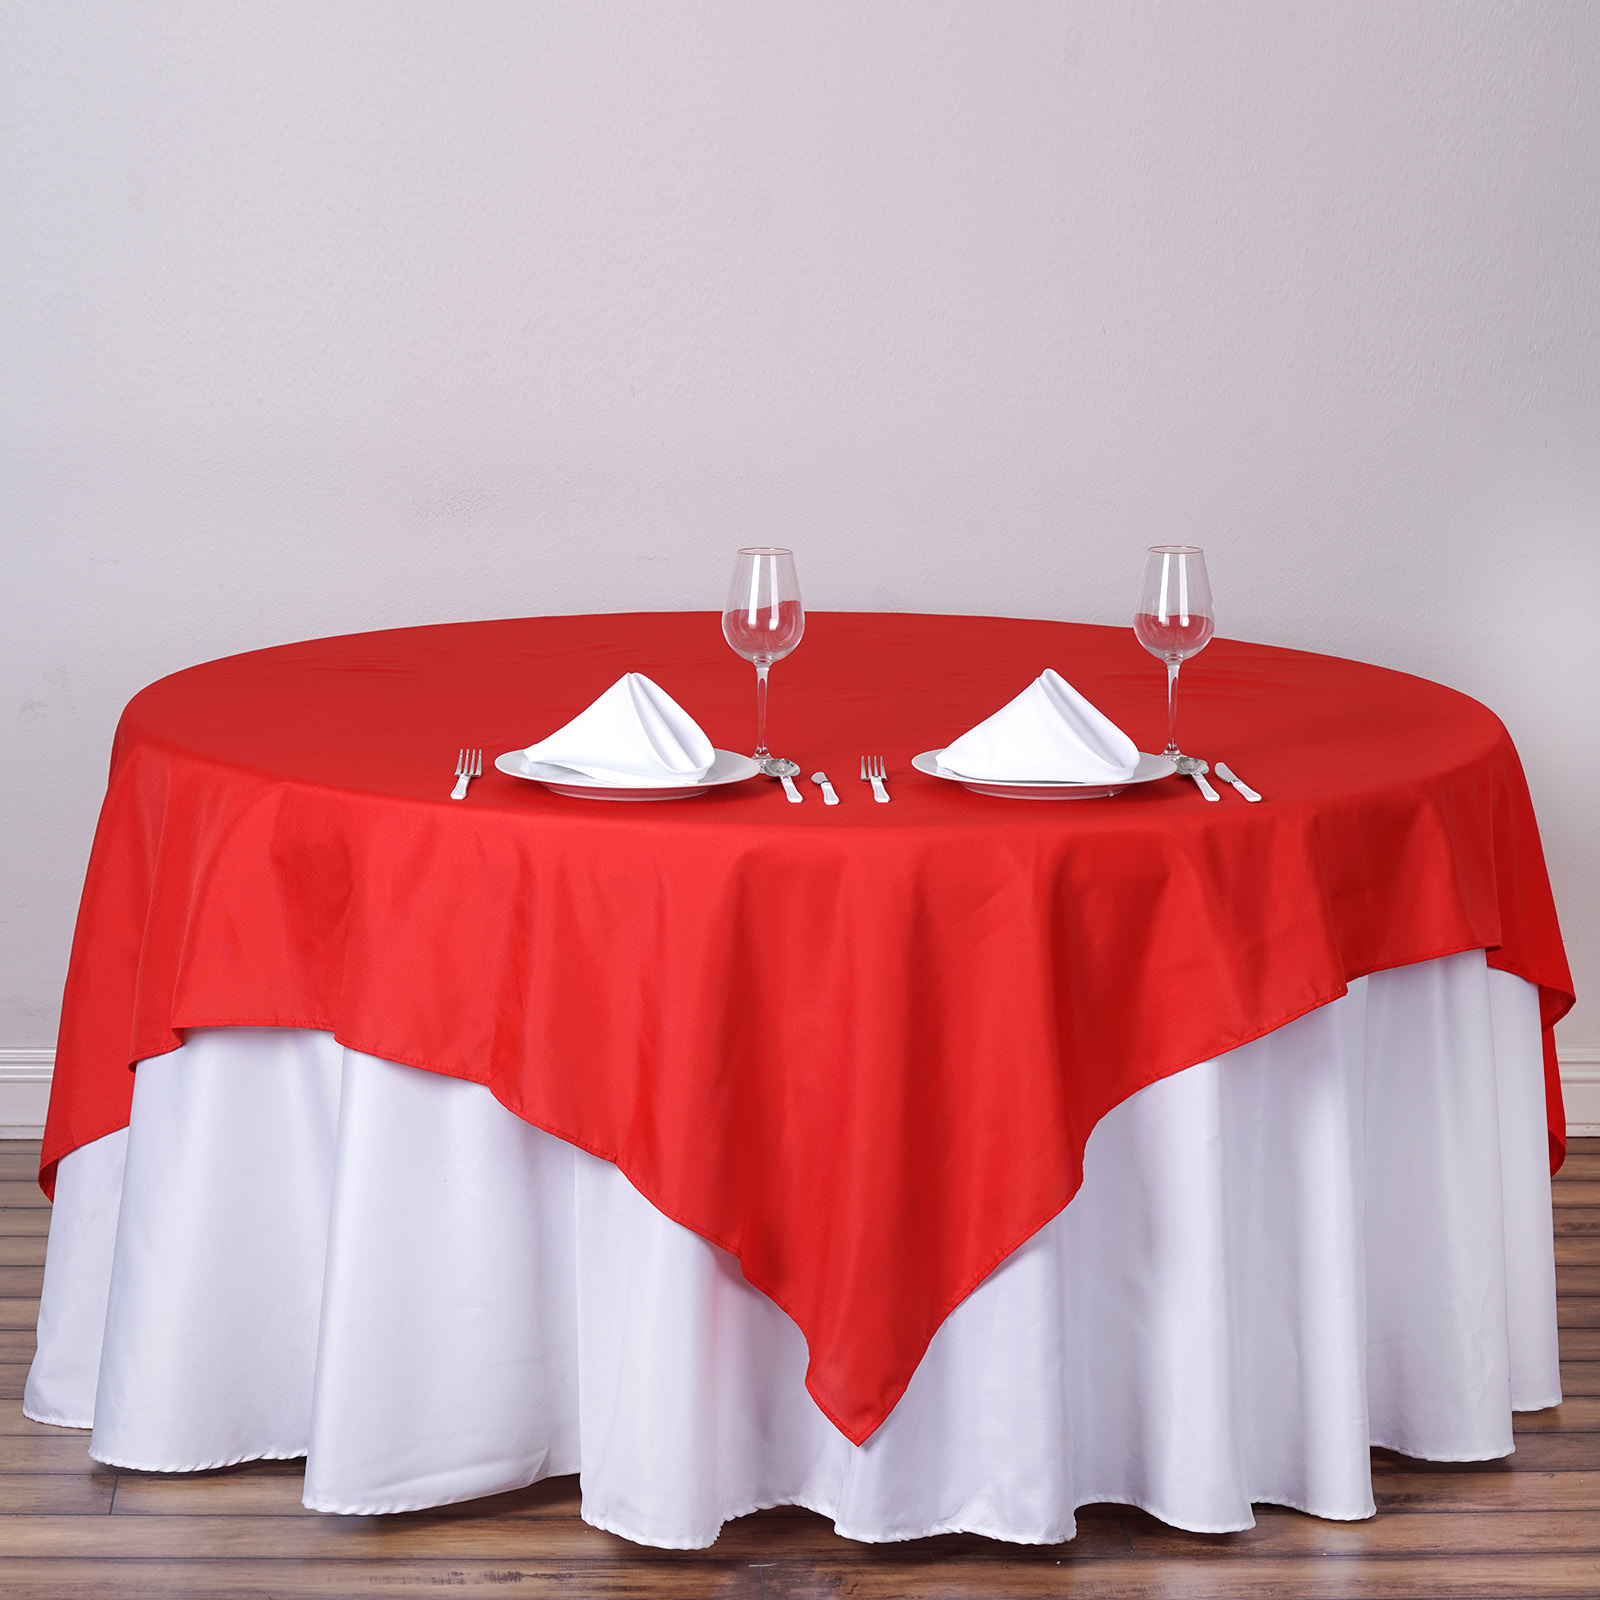 """BalsaCircle 70"""" x 70"""" Square Polyester Tablecloth Table Covers for Party Wedding... by"""